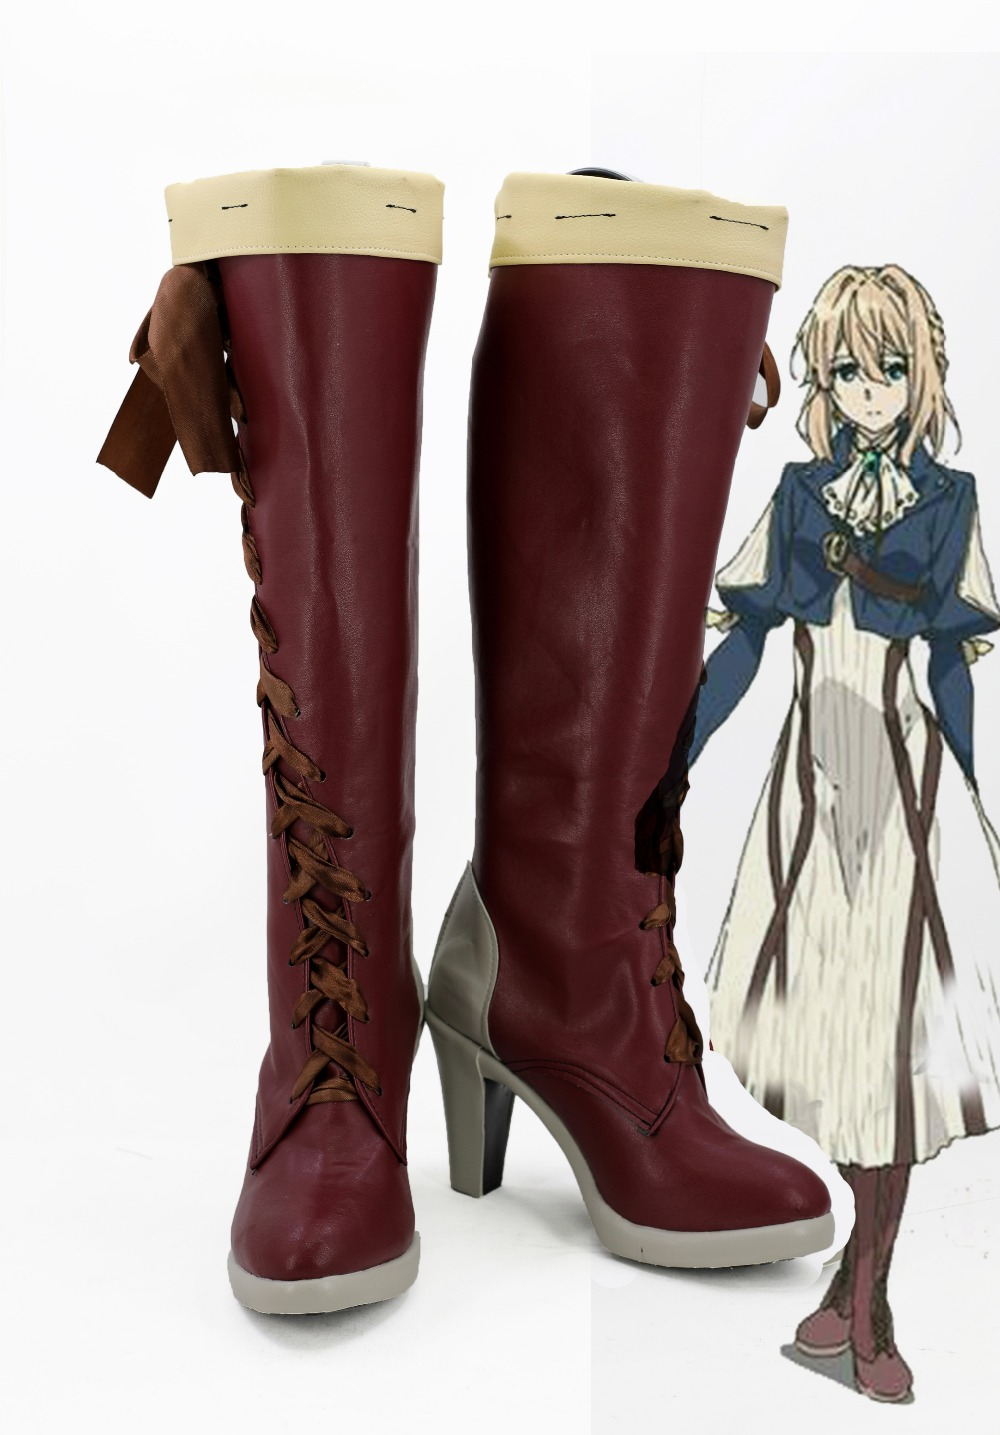 Japanese Anime Violet Evergarden Cosplay Shoes Violet Evergarden Boots For Women